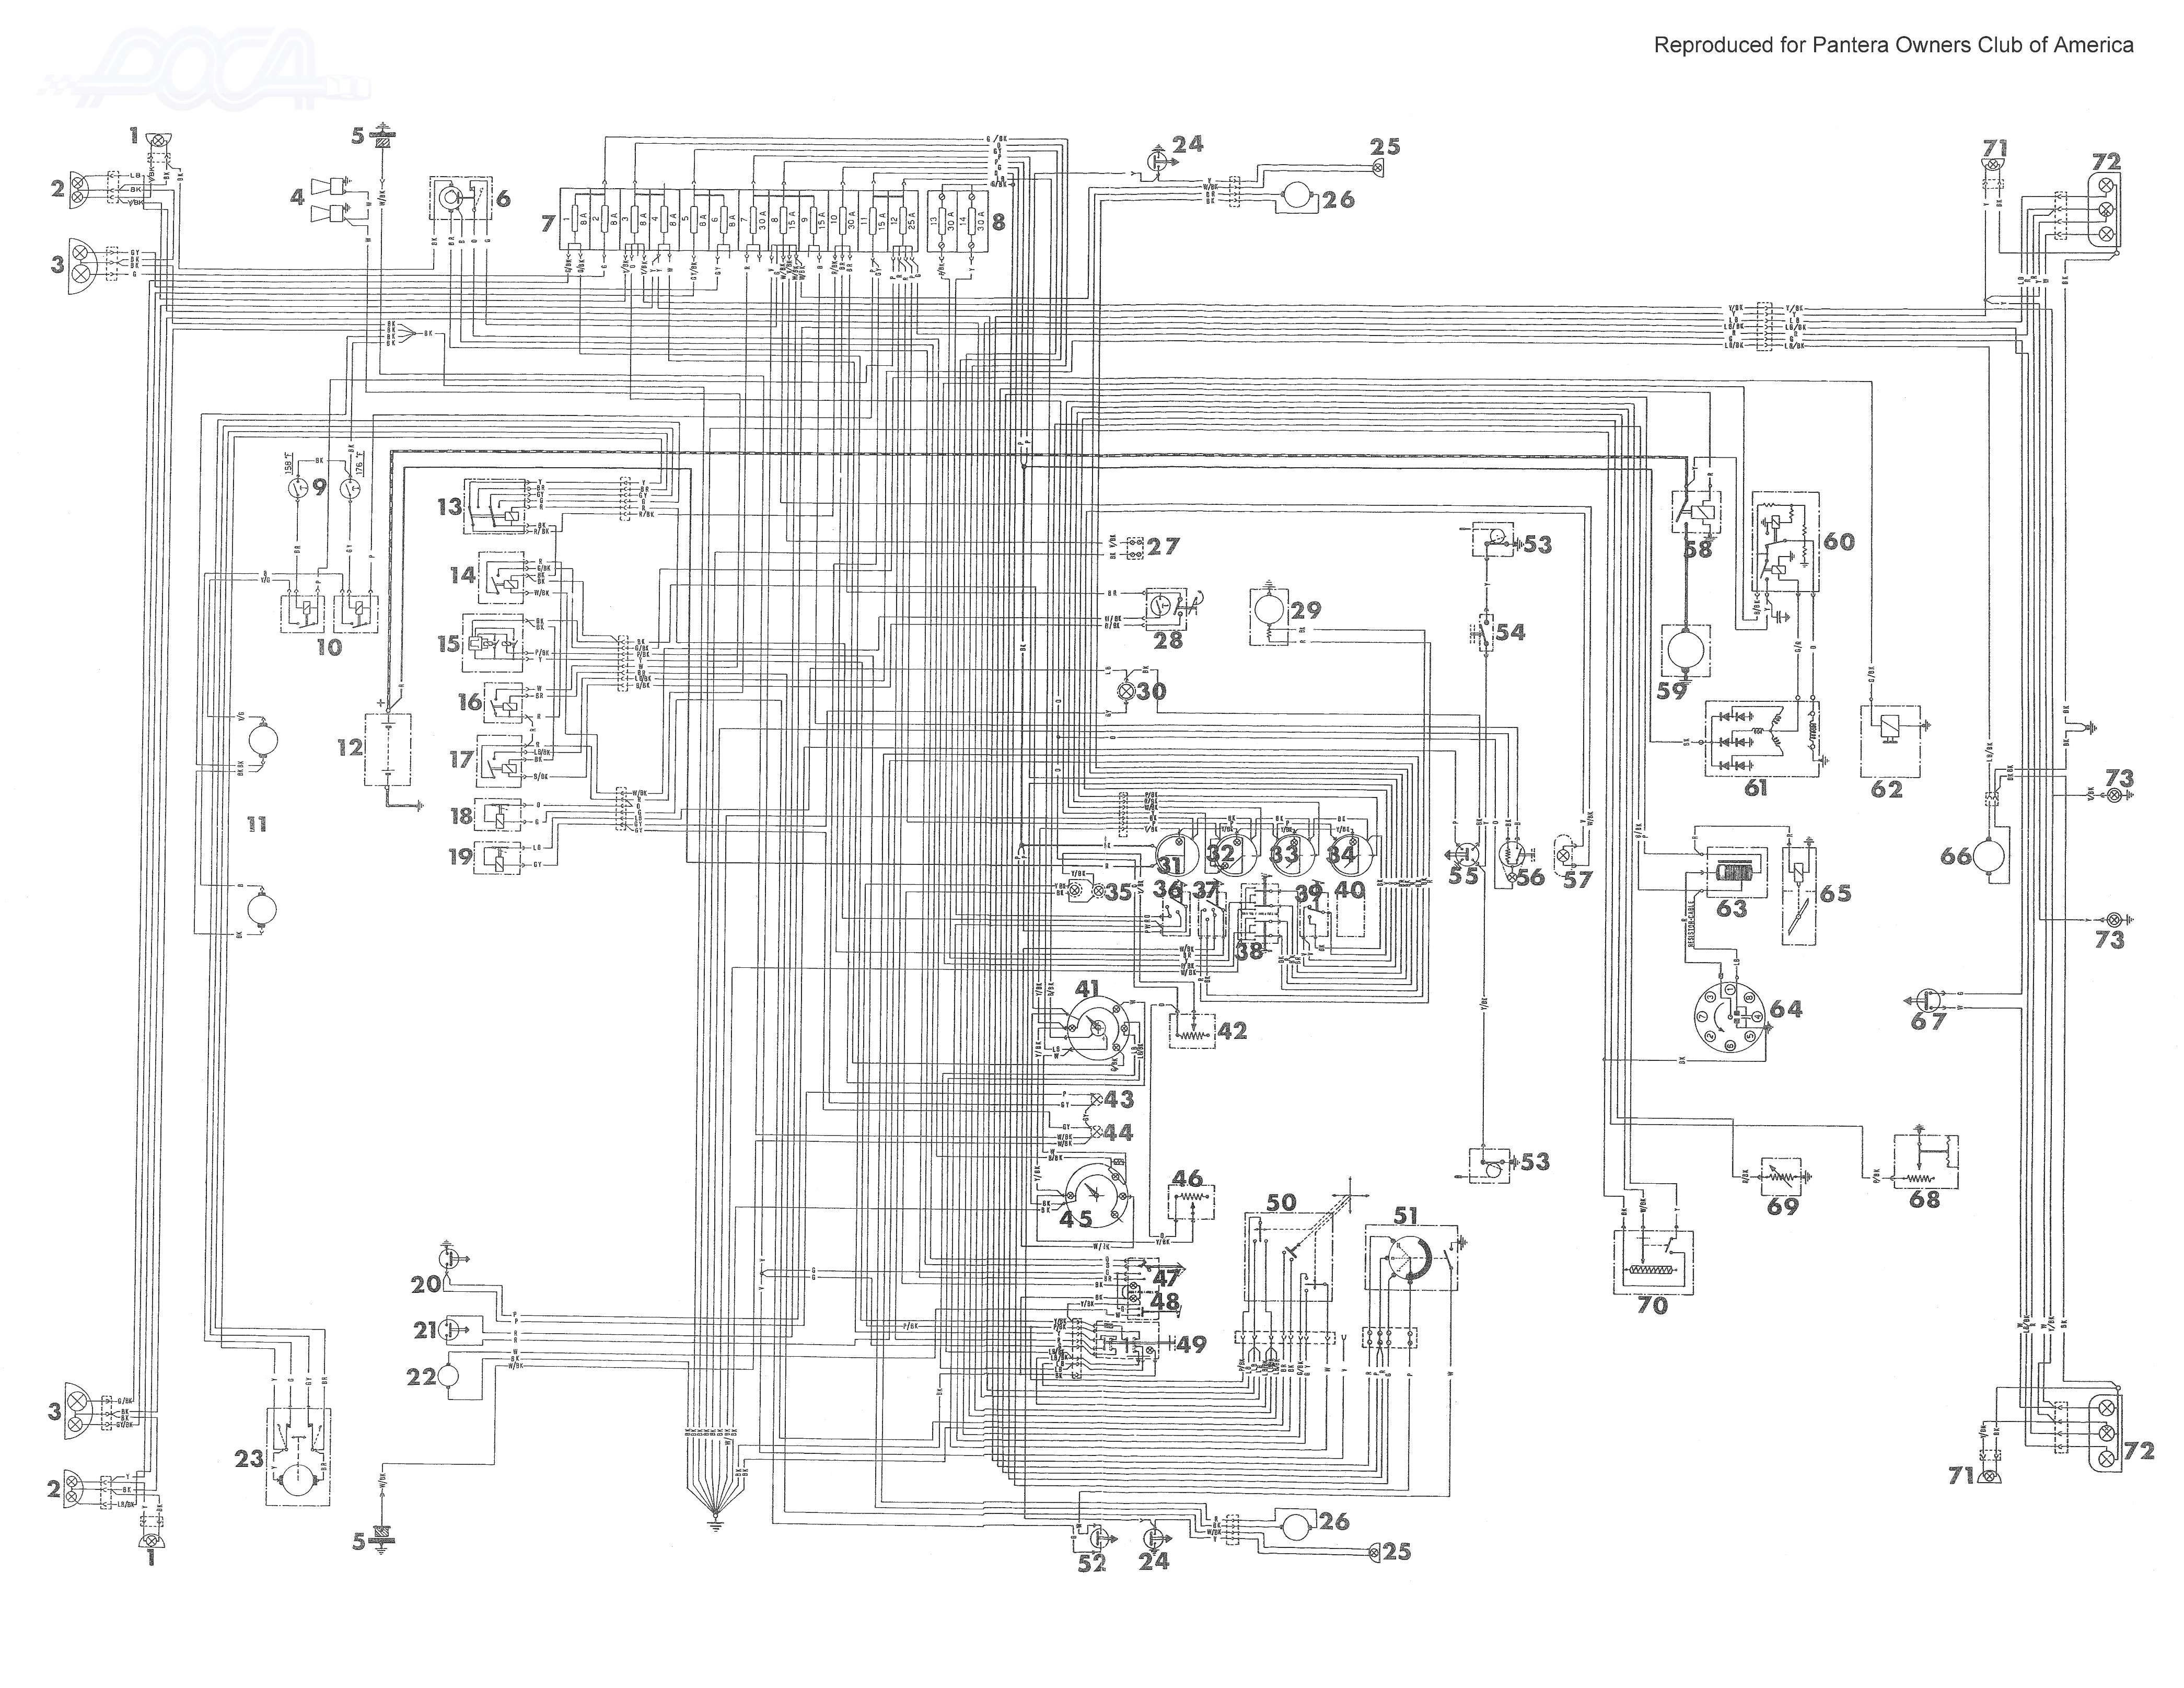 Corsa B Headlight Wiring Diagram Trusted Diagrams 2000 Yfz 450 Free Download Mustang Switch